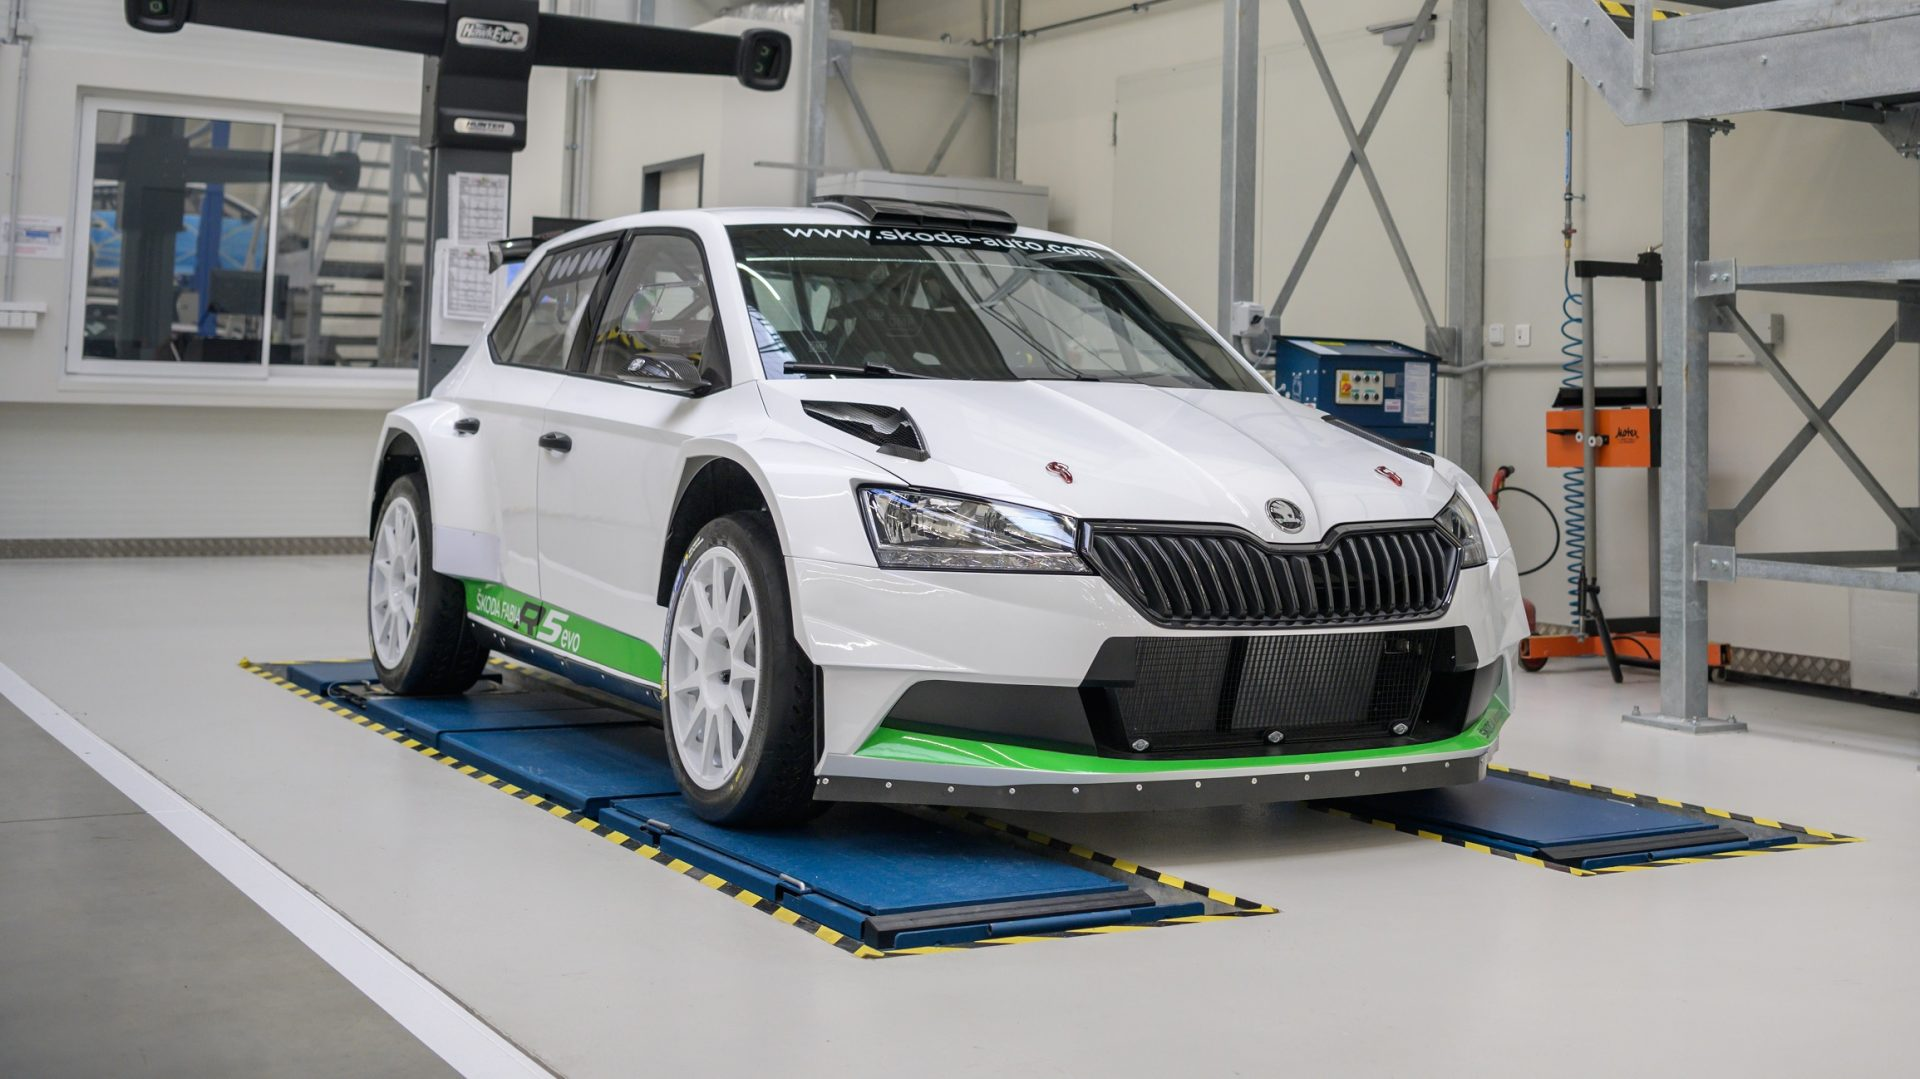 10 Most Important Changes In The ŠKODA FABIA R5 evo